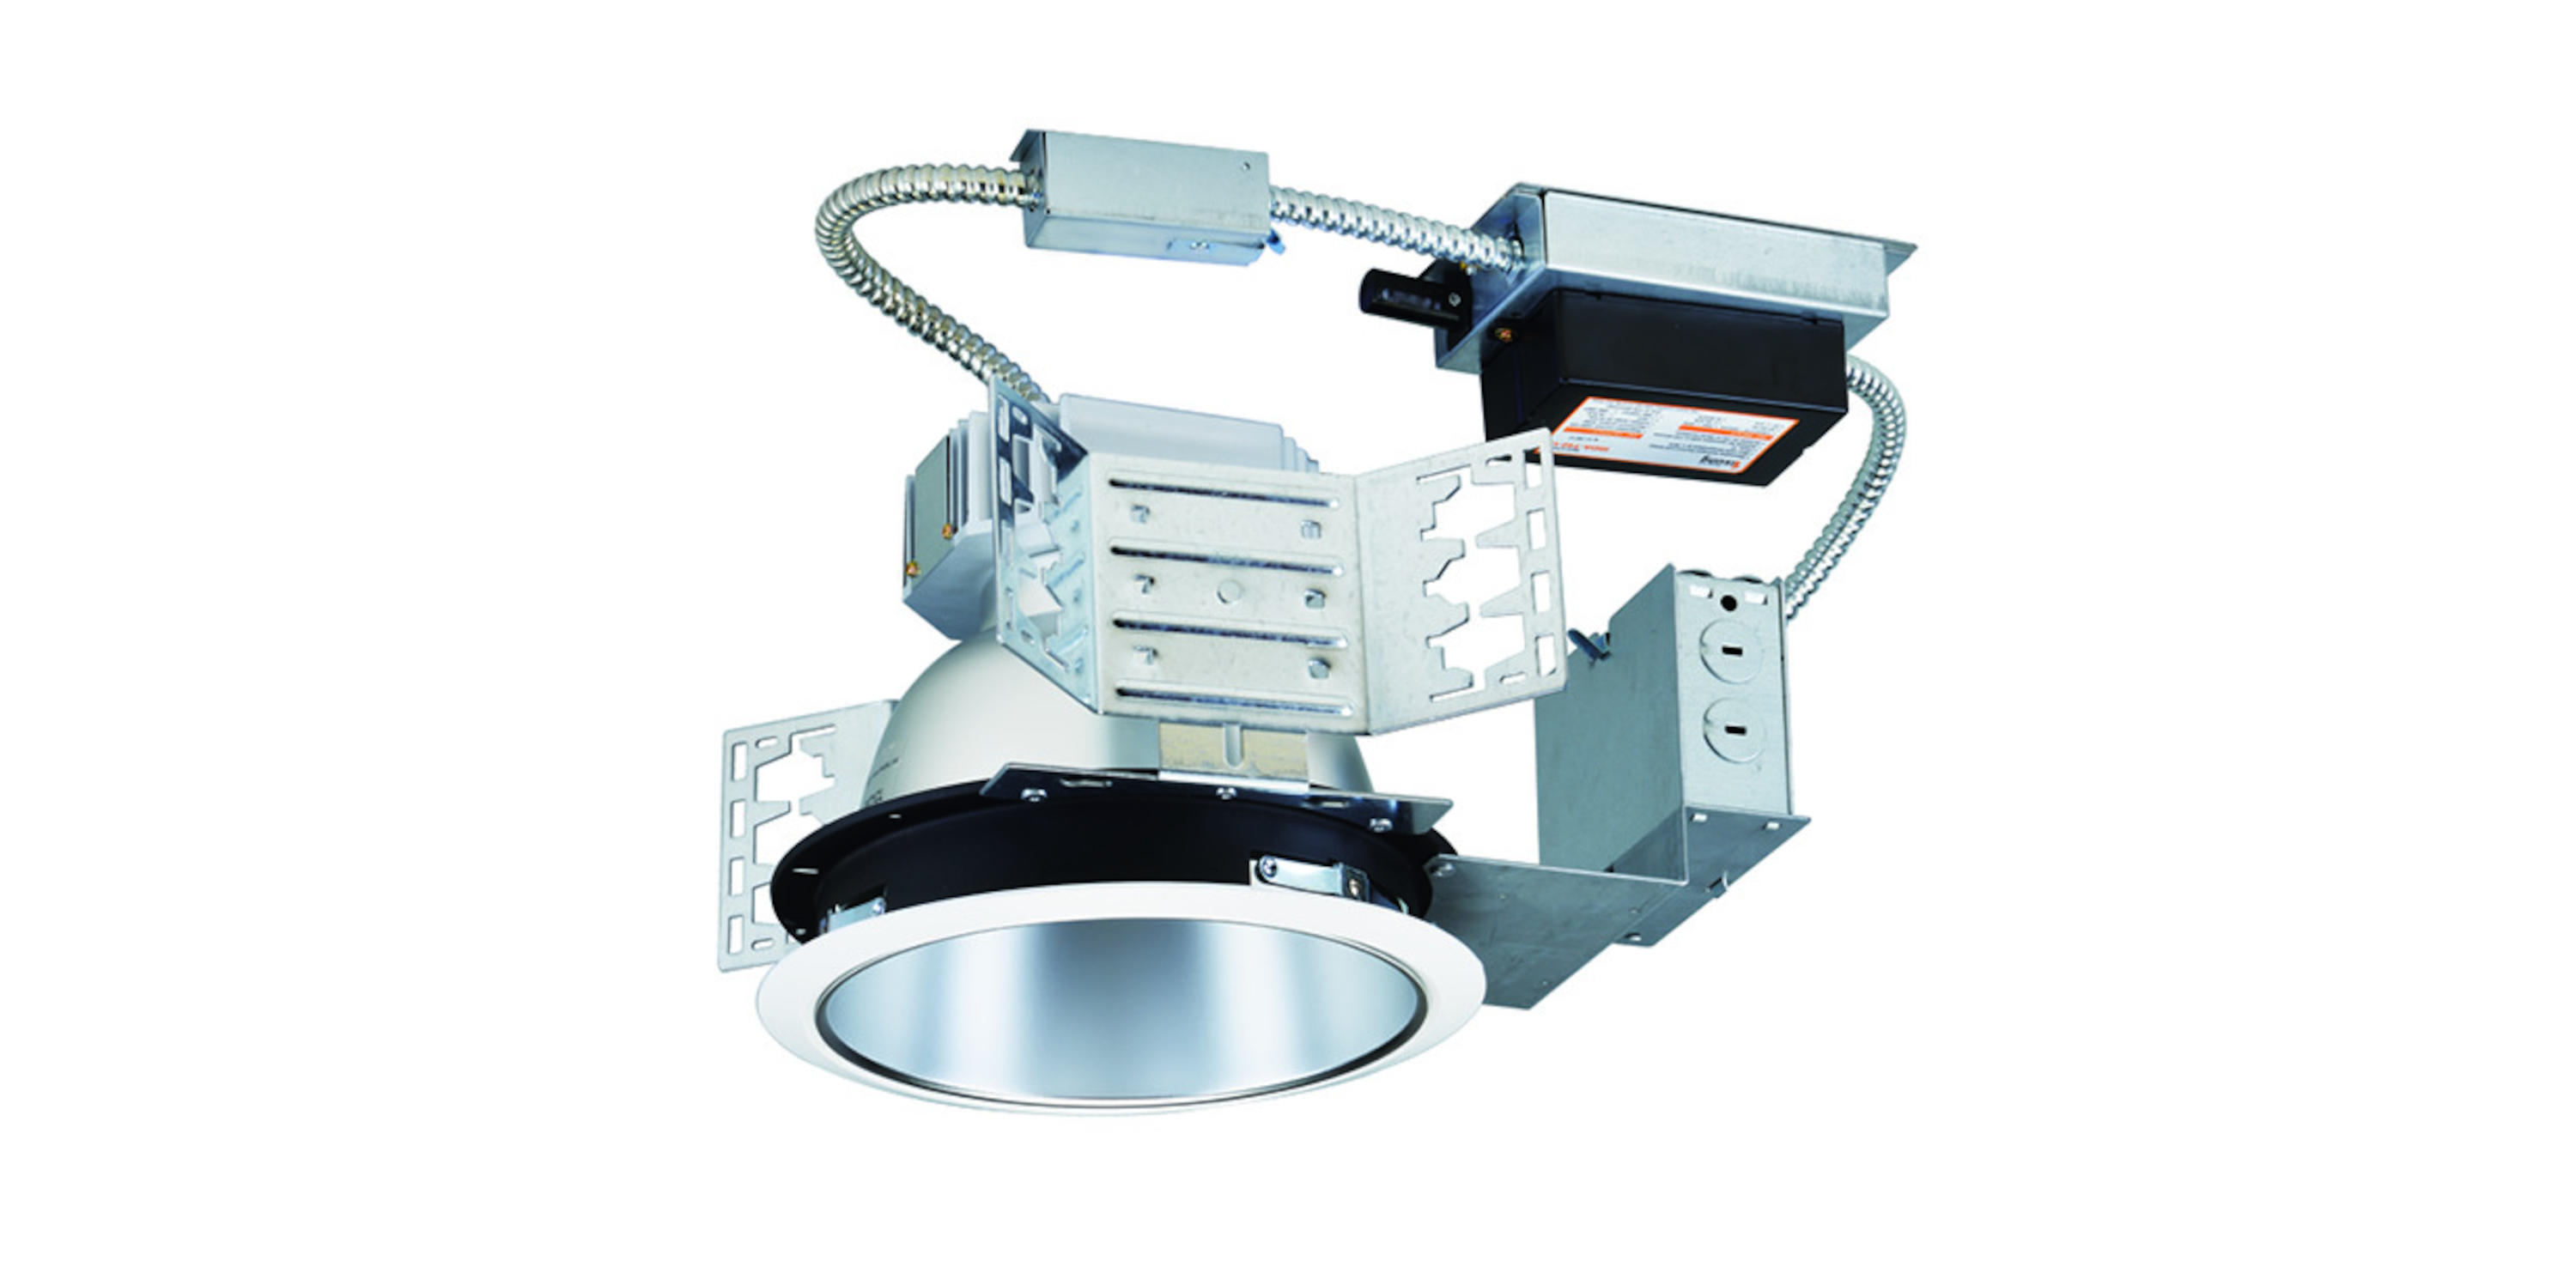 Led 6 Commercial Recessed Architectural Downlight 14w